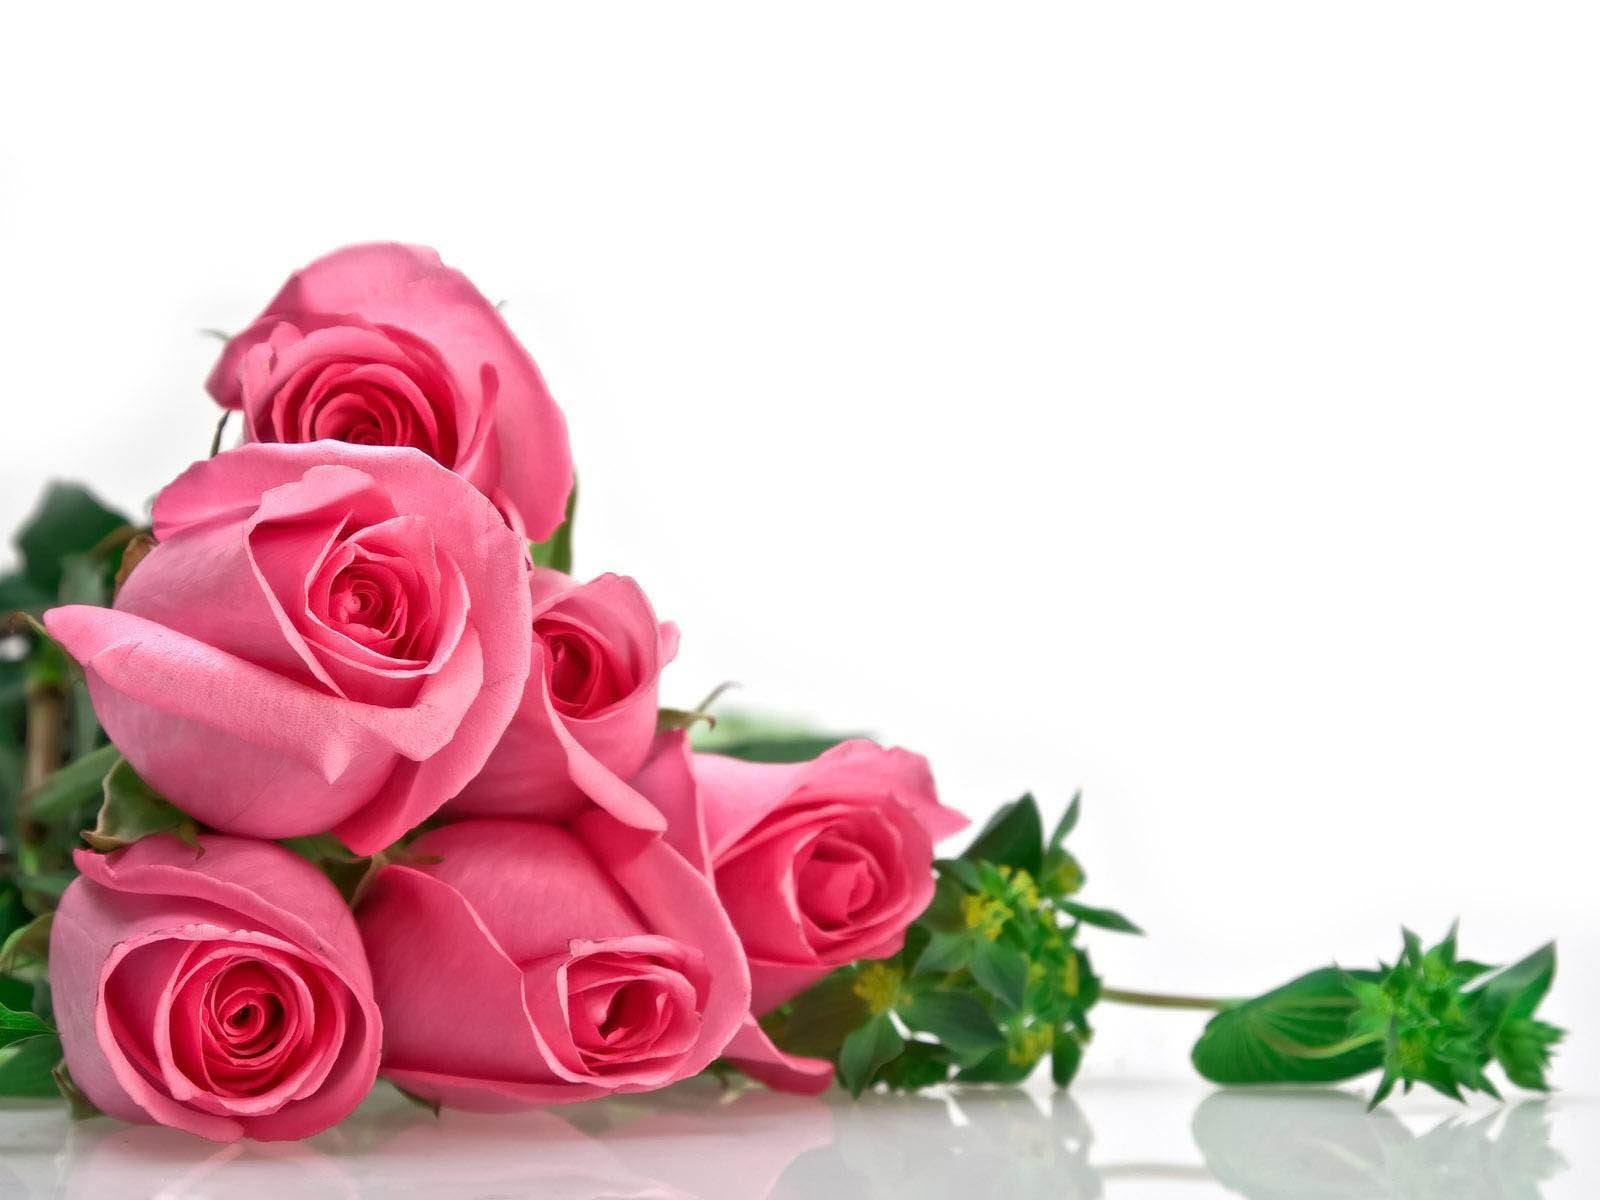 rose day quotes, rose day